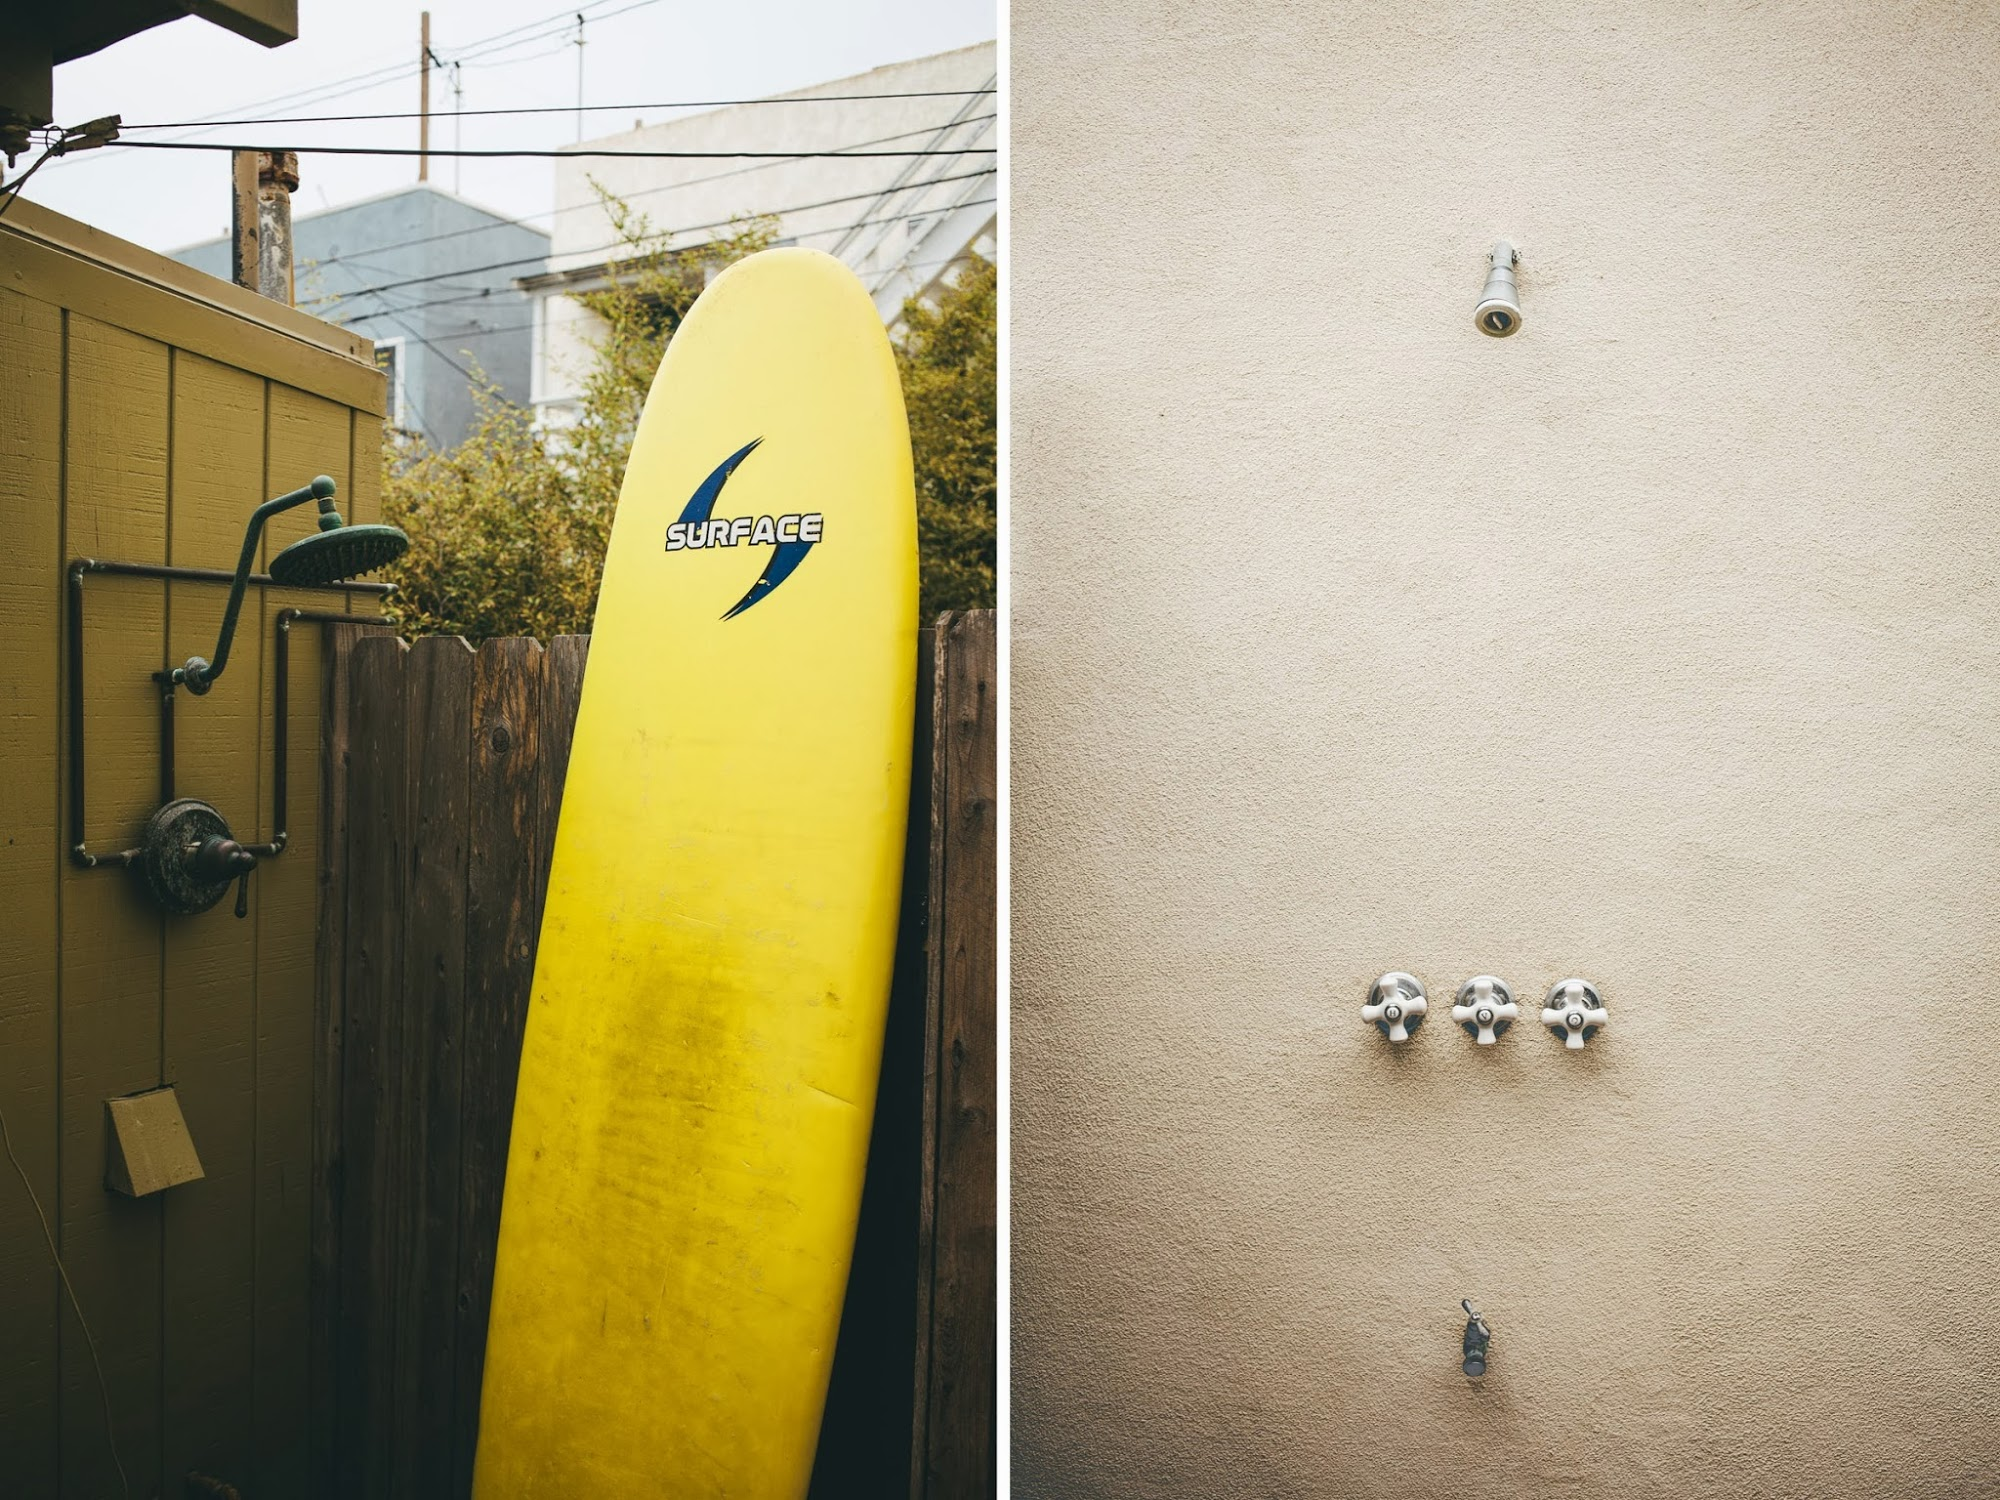 beach-house-shower-surfboard.jpg